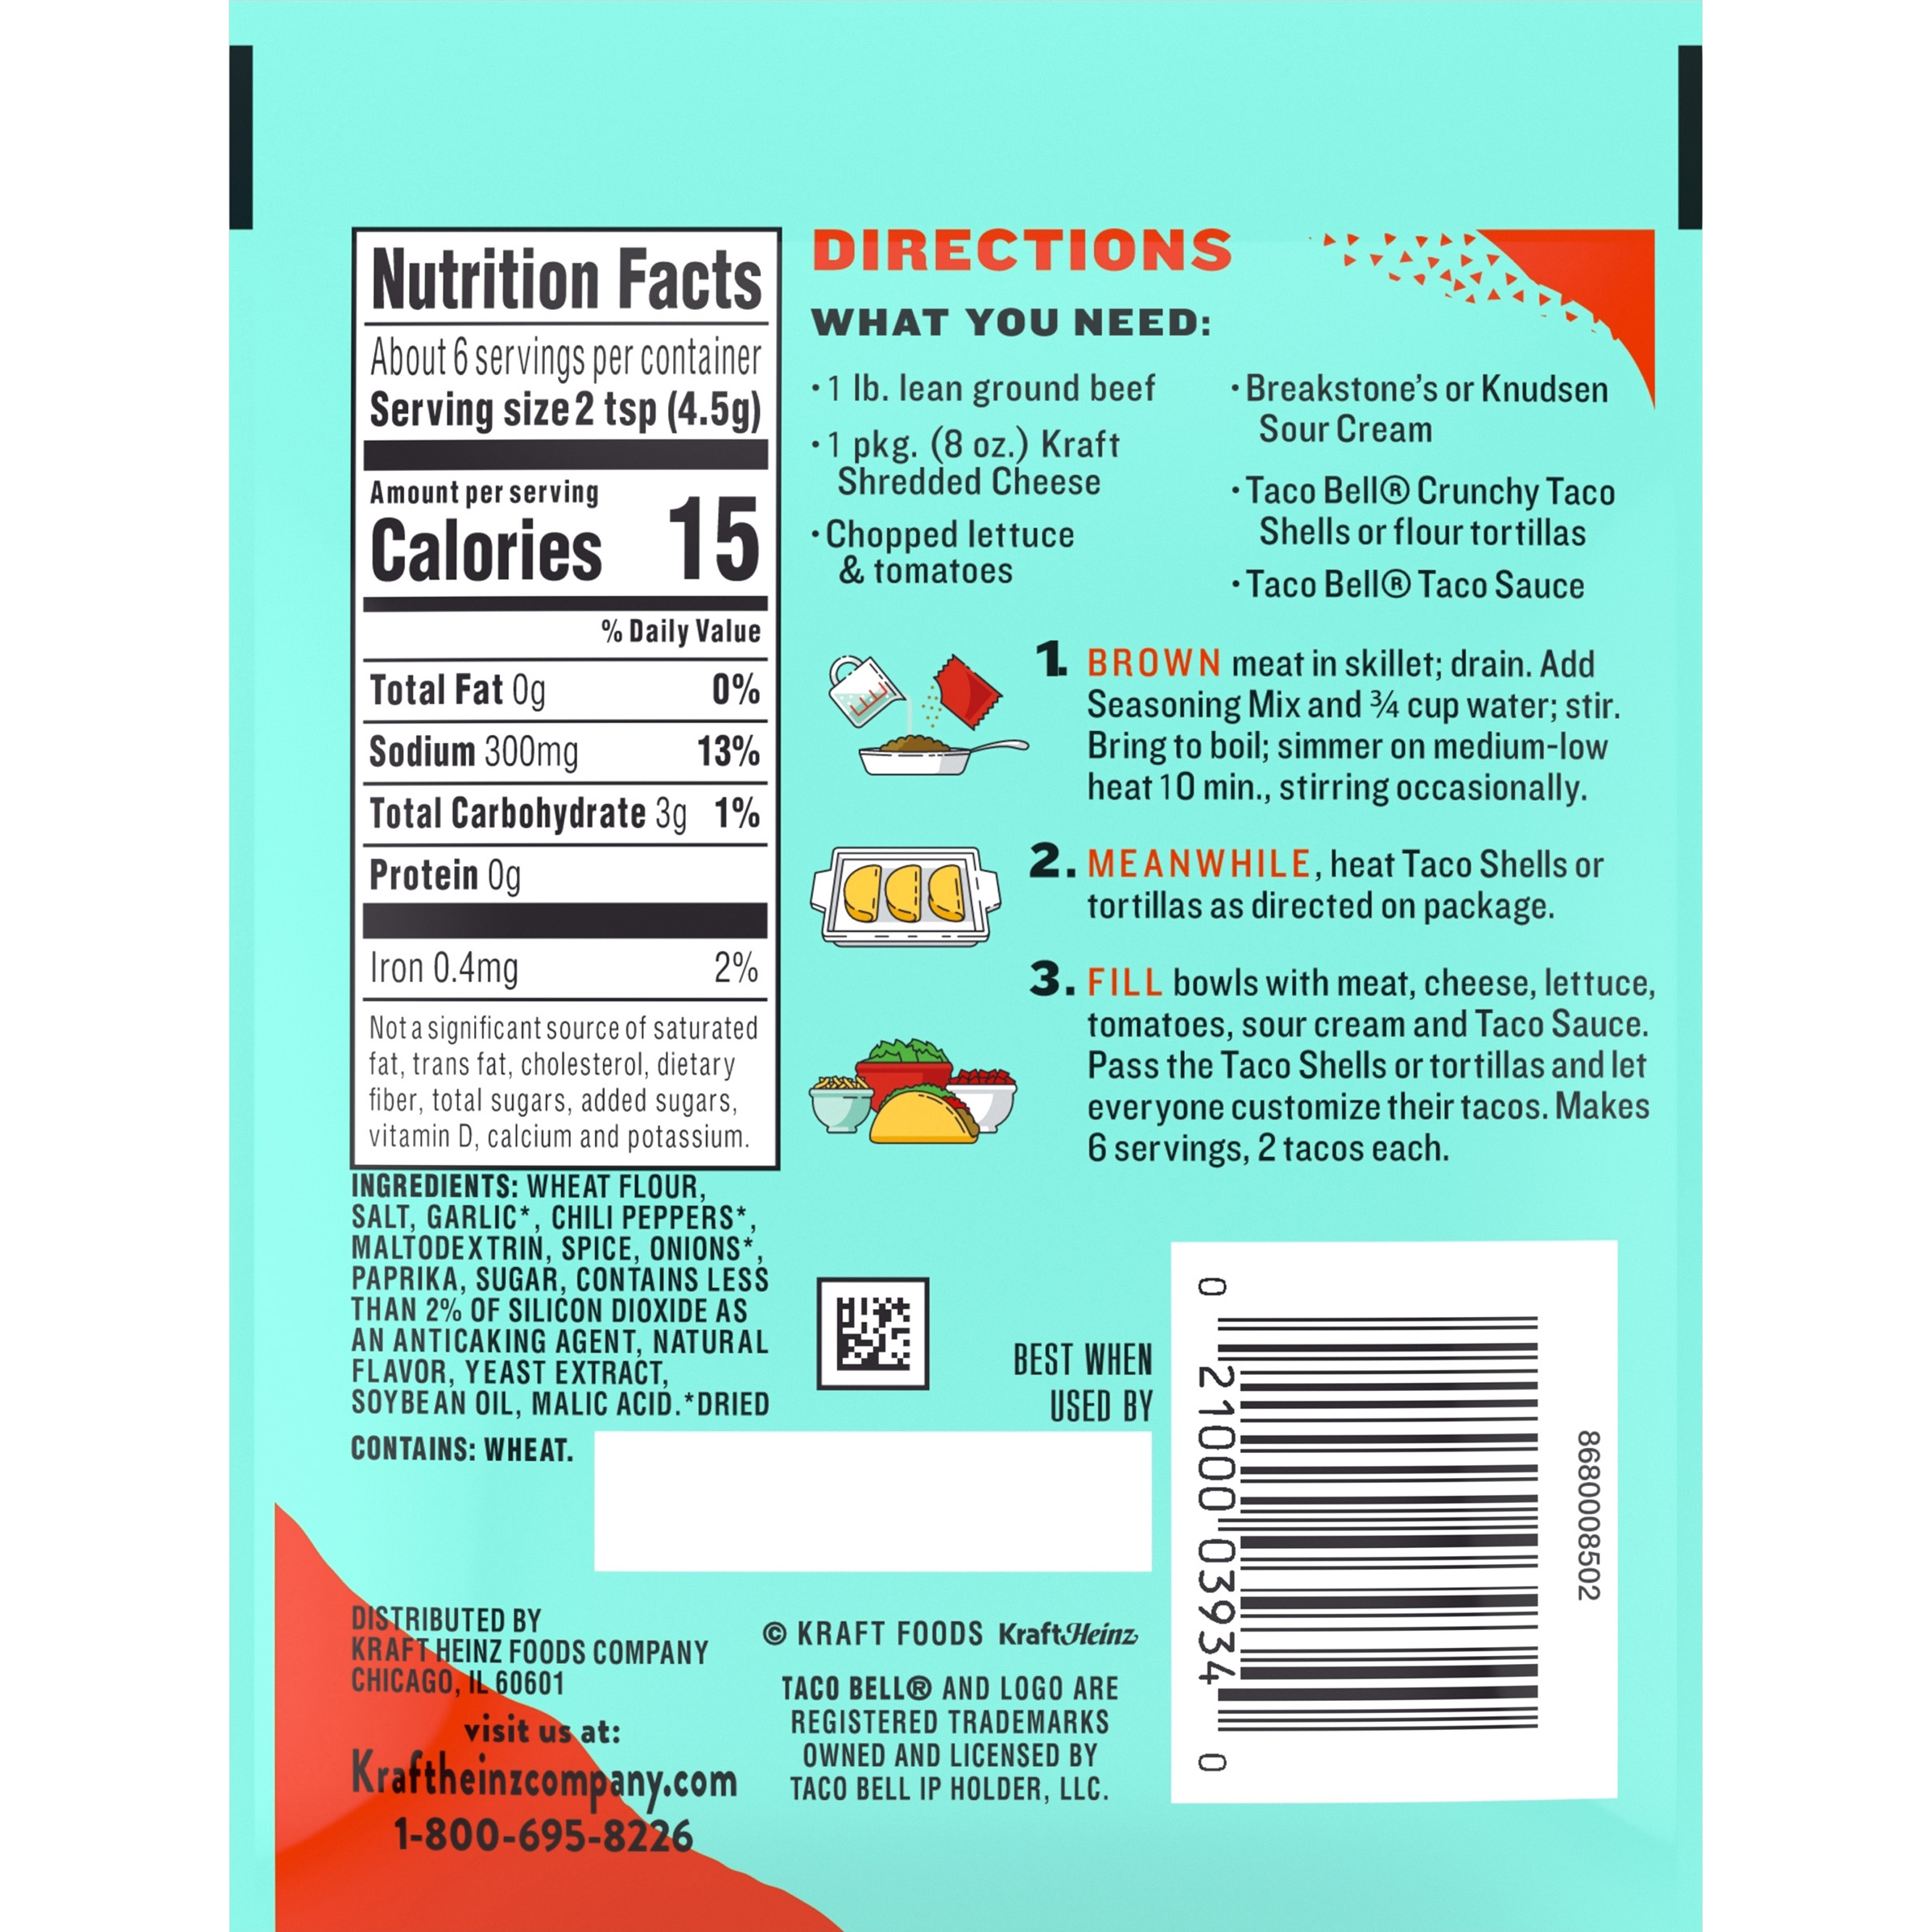 Kroger Taco Seasoning Nutrition Facts Nutritionwalls